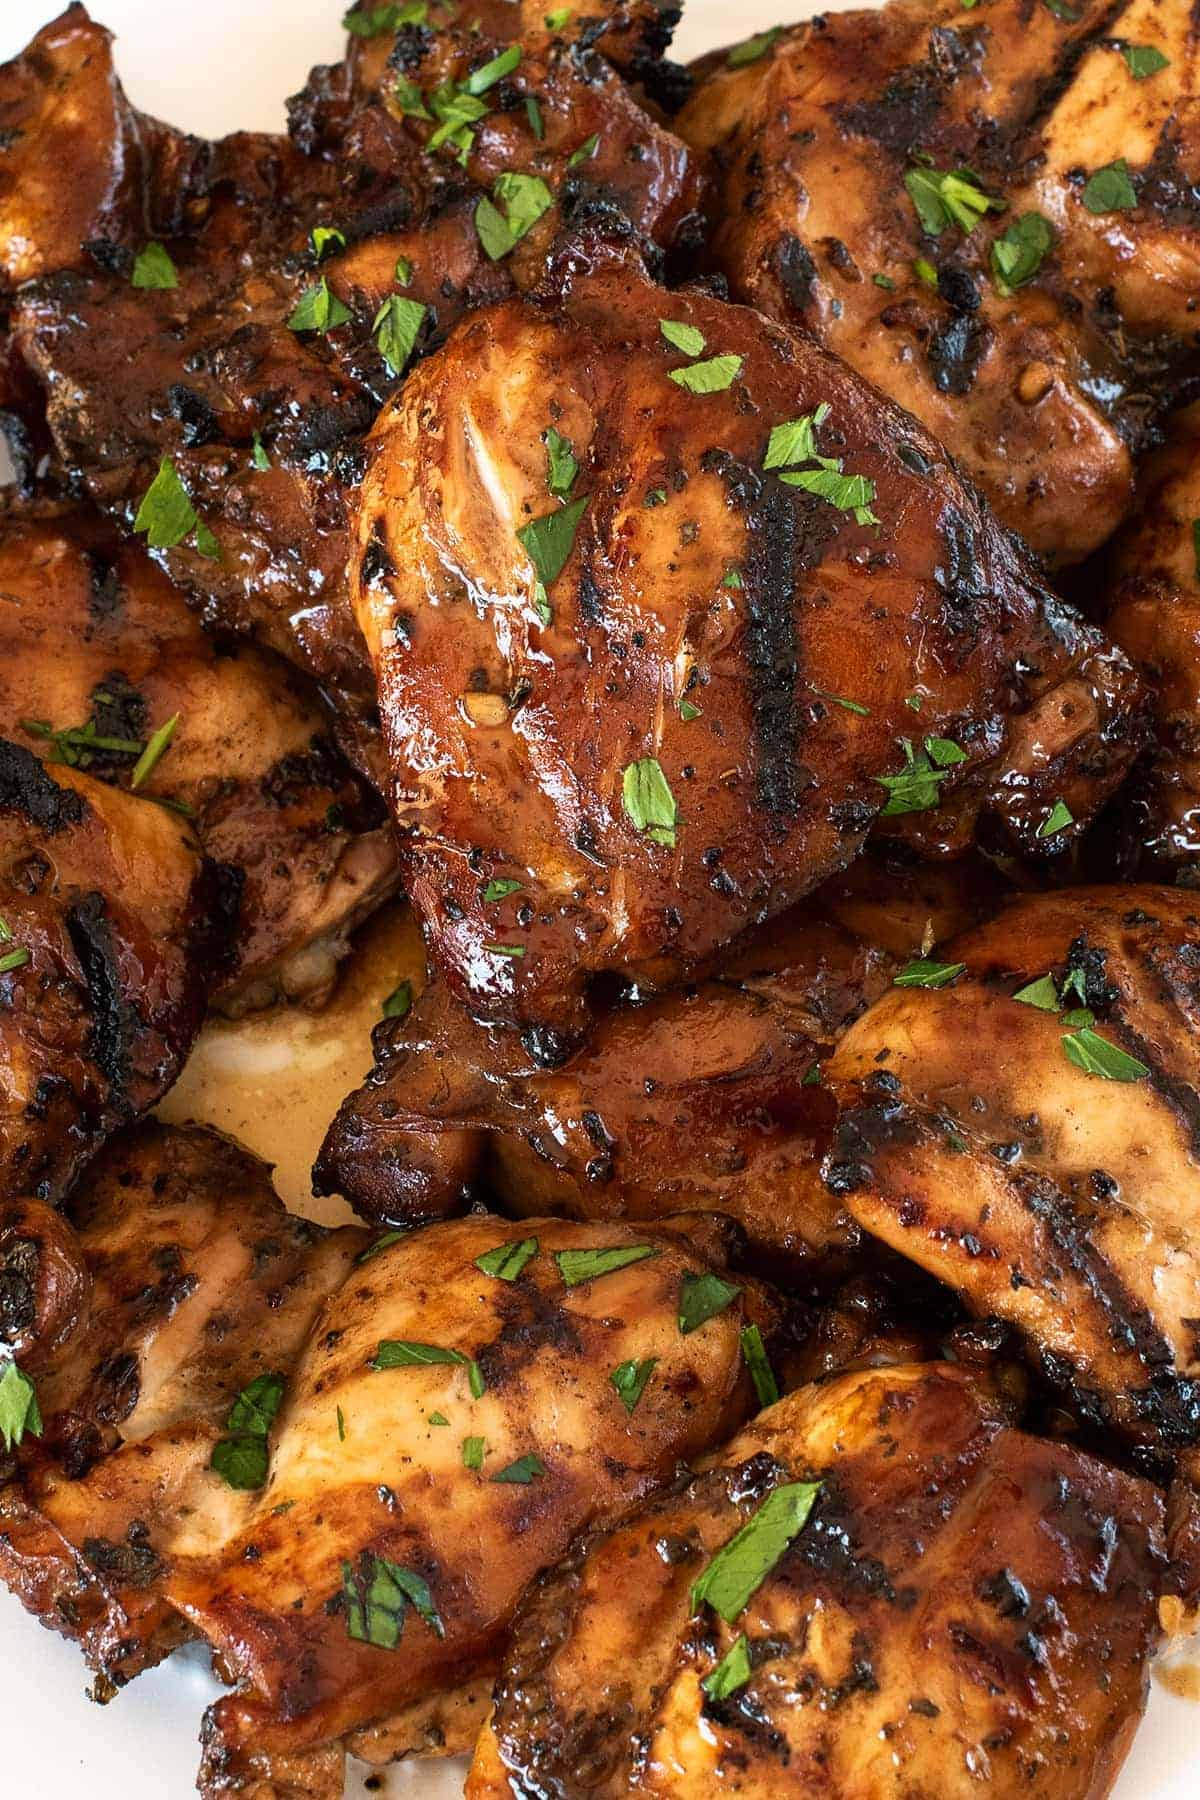 Freshly grilled chicken thighs with marinade and chopped fresh basil.